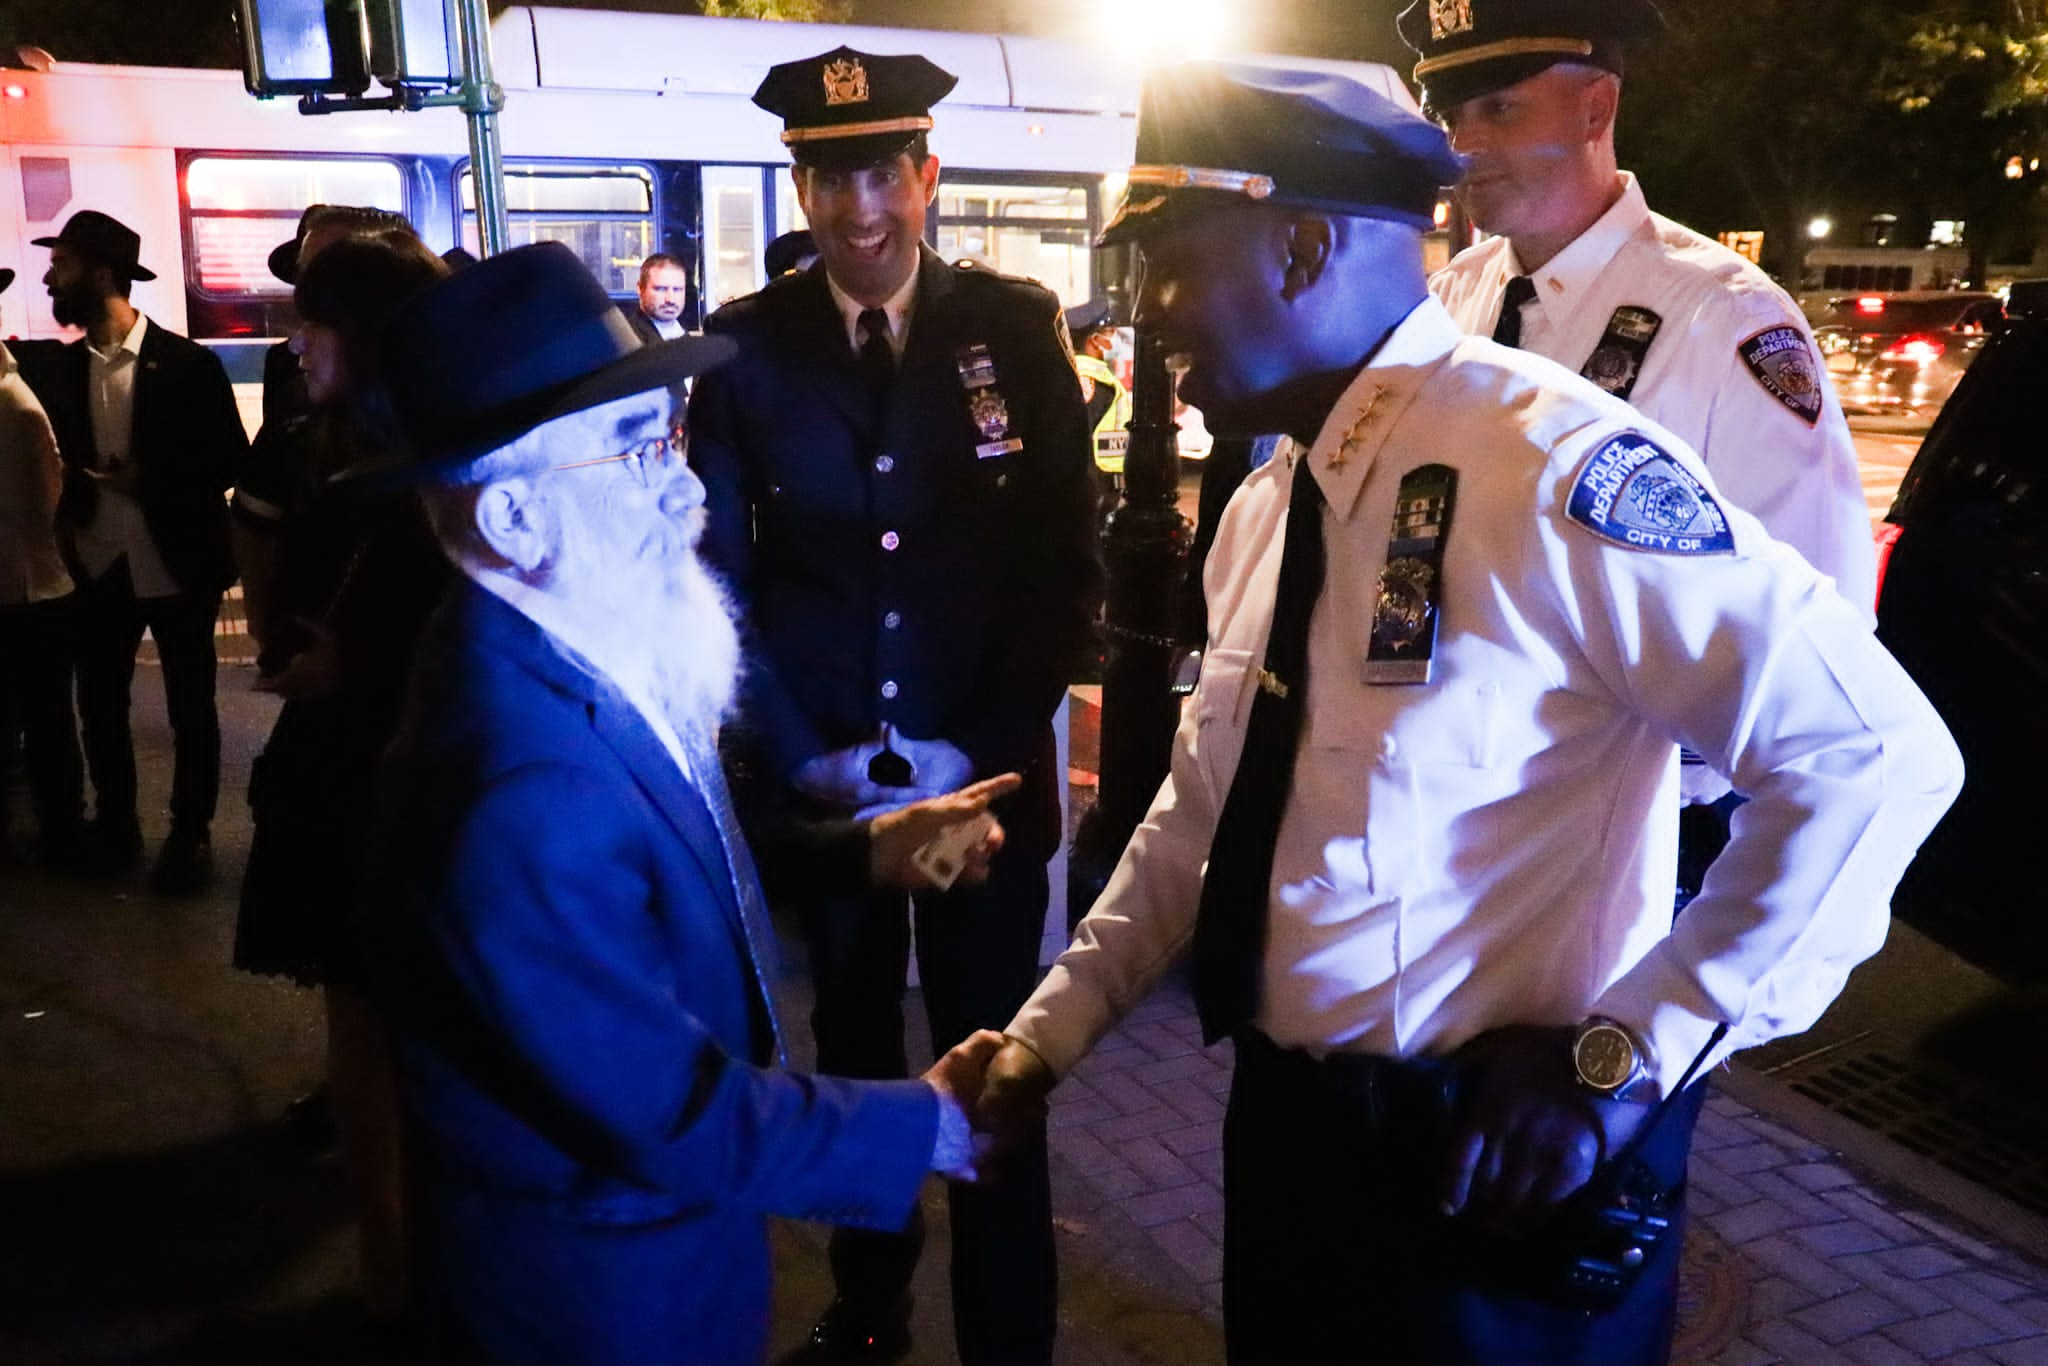 NYPD Chiefs Assure Crown Heights Residents They Will Keep Them Safe